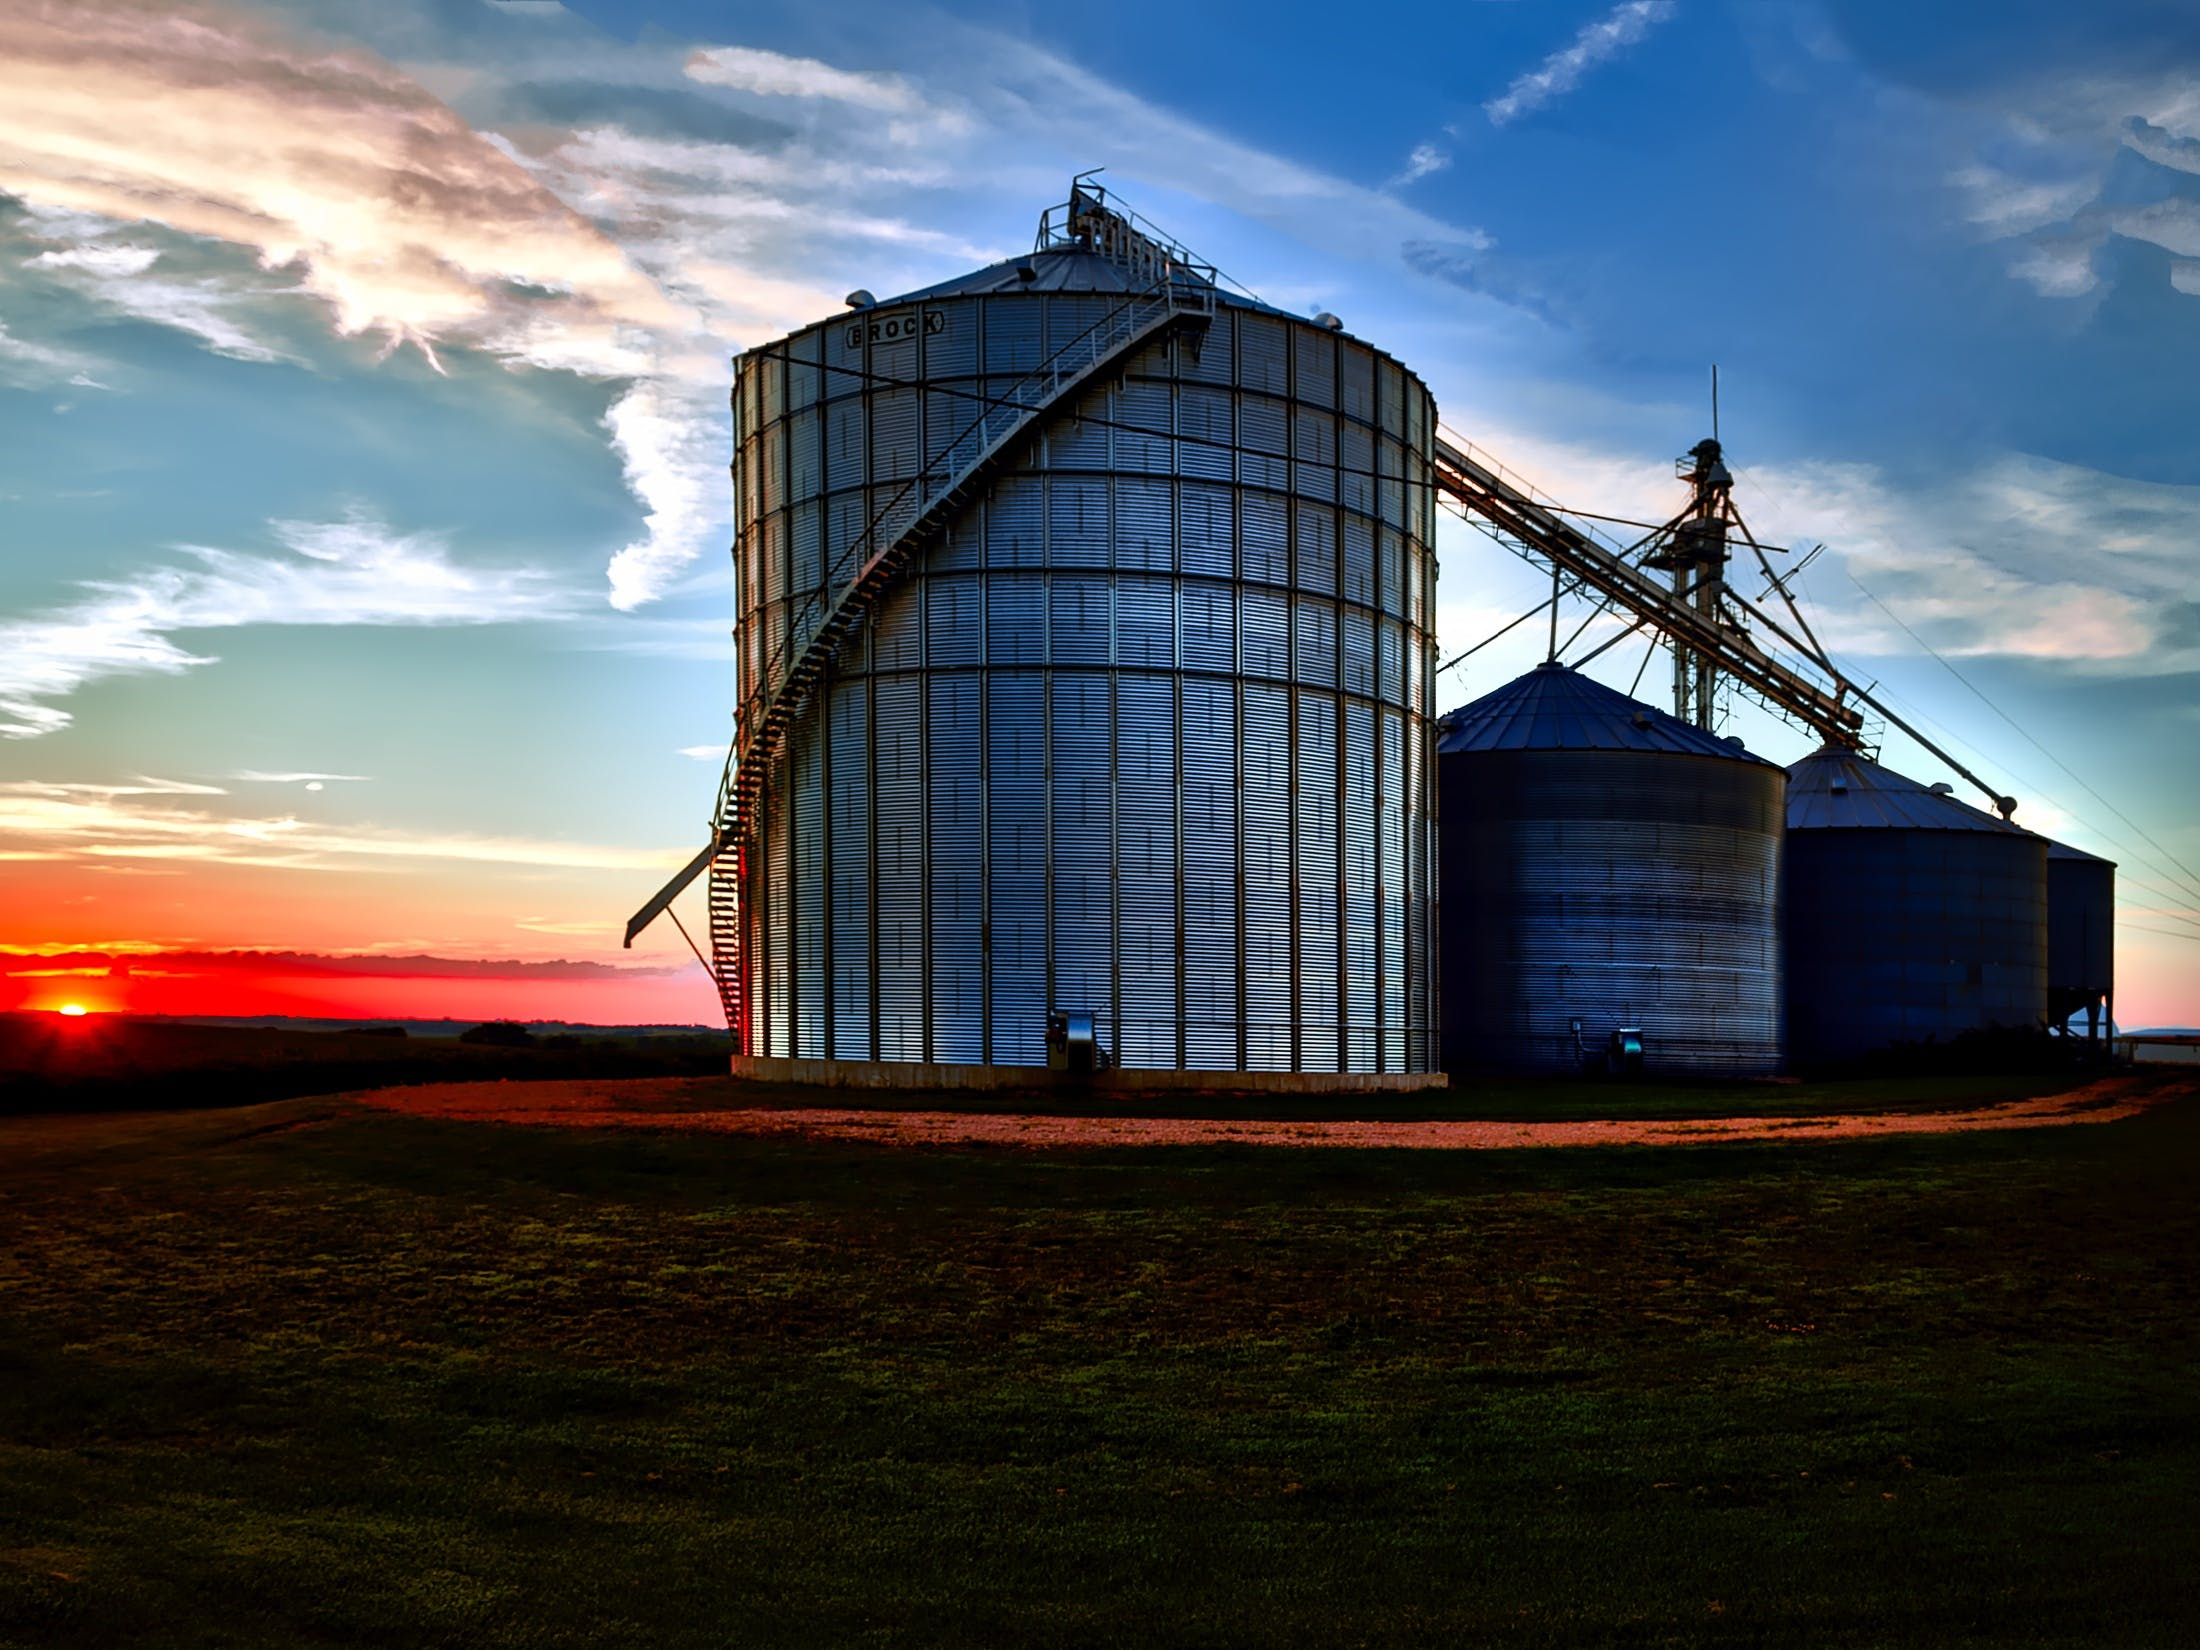 agriculture, architecture, building